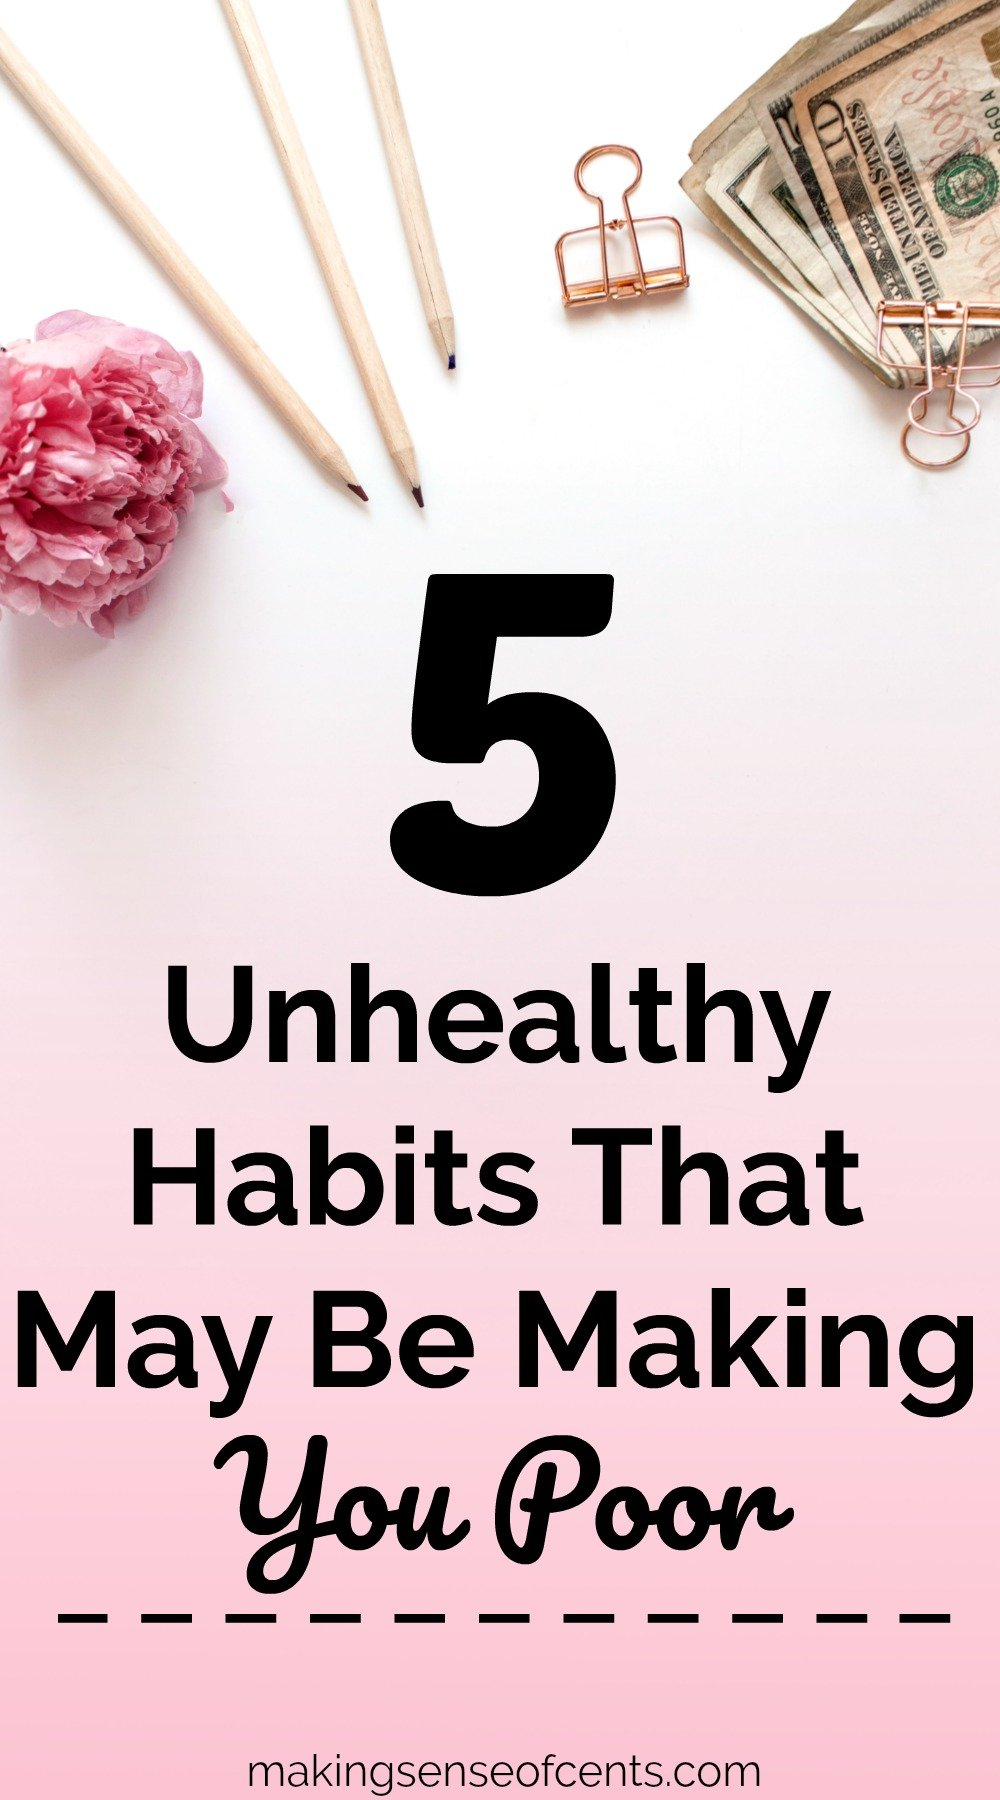 Unhealthy Habits That May Be Making You Poor